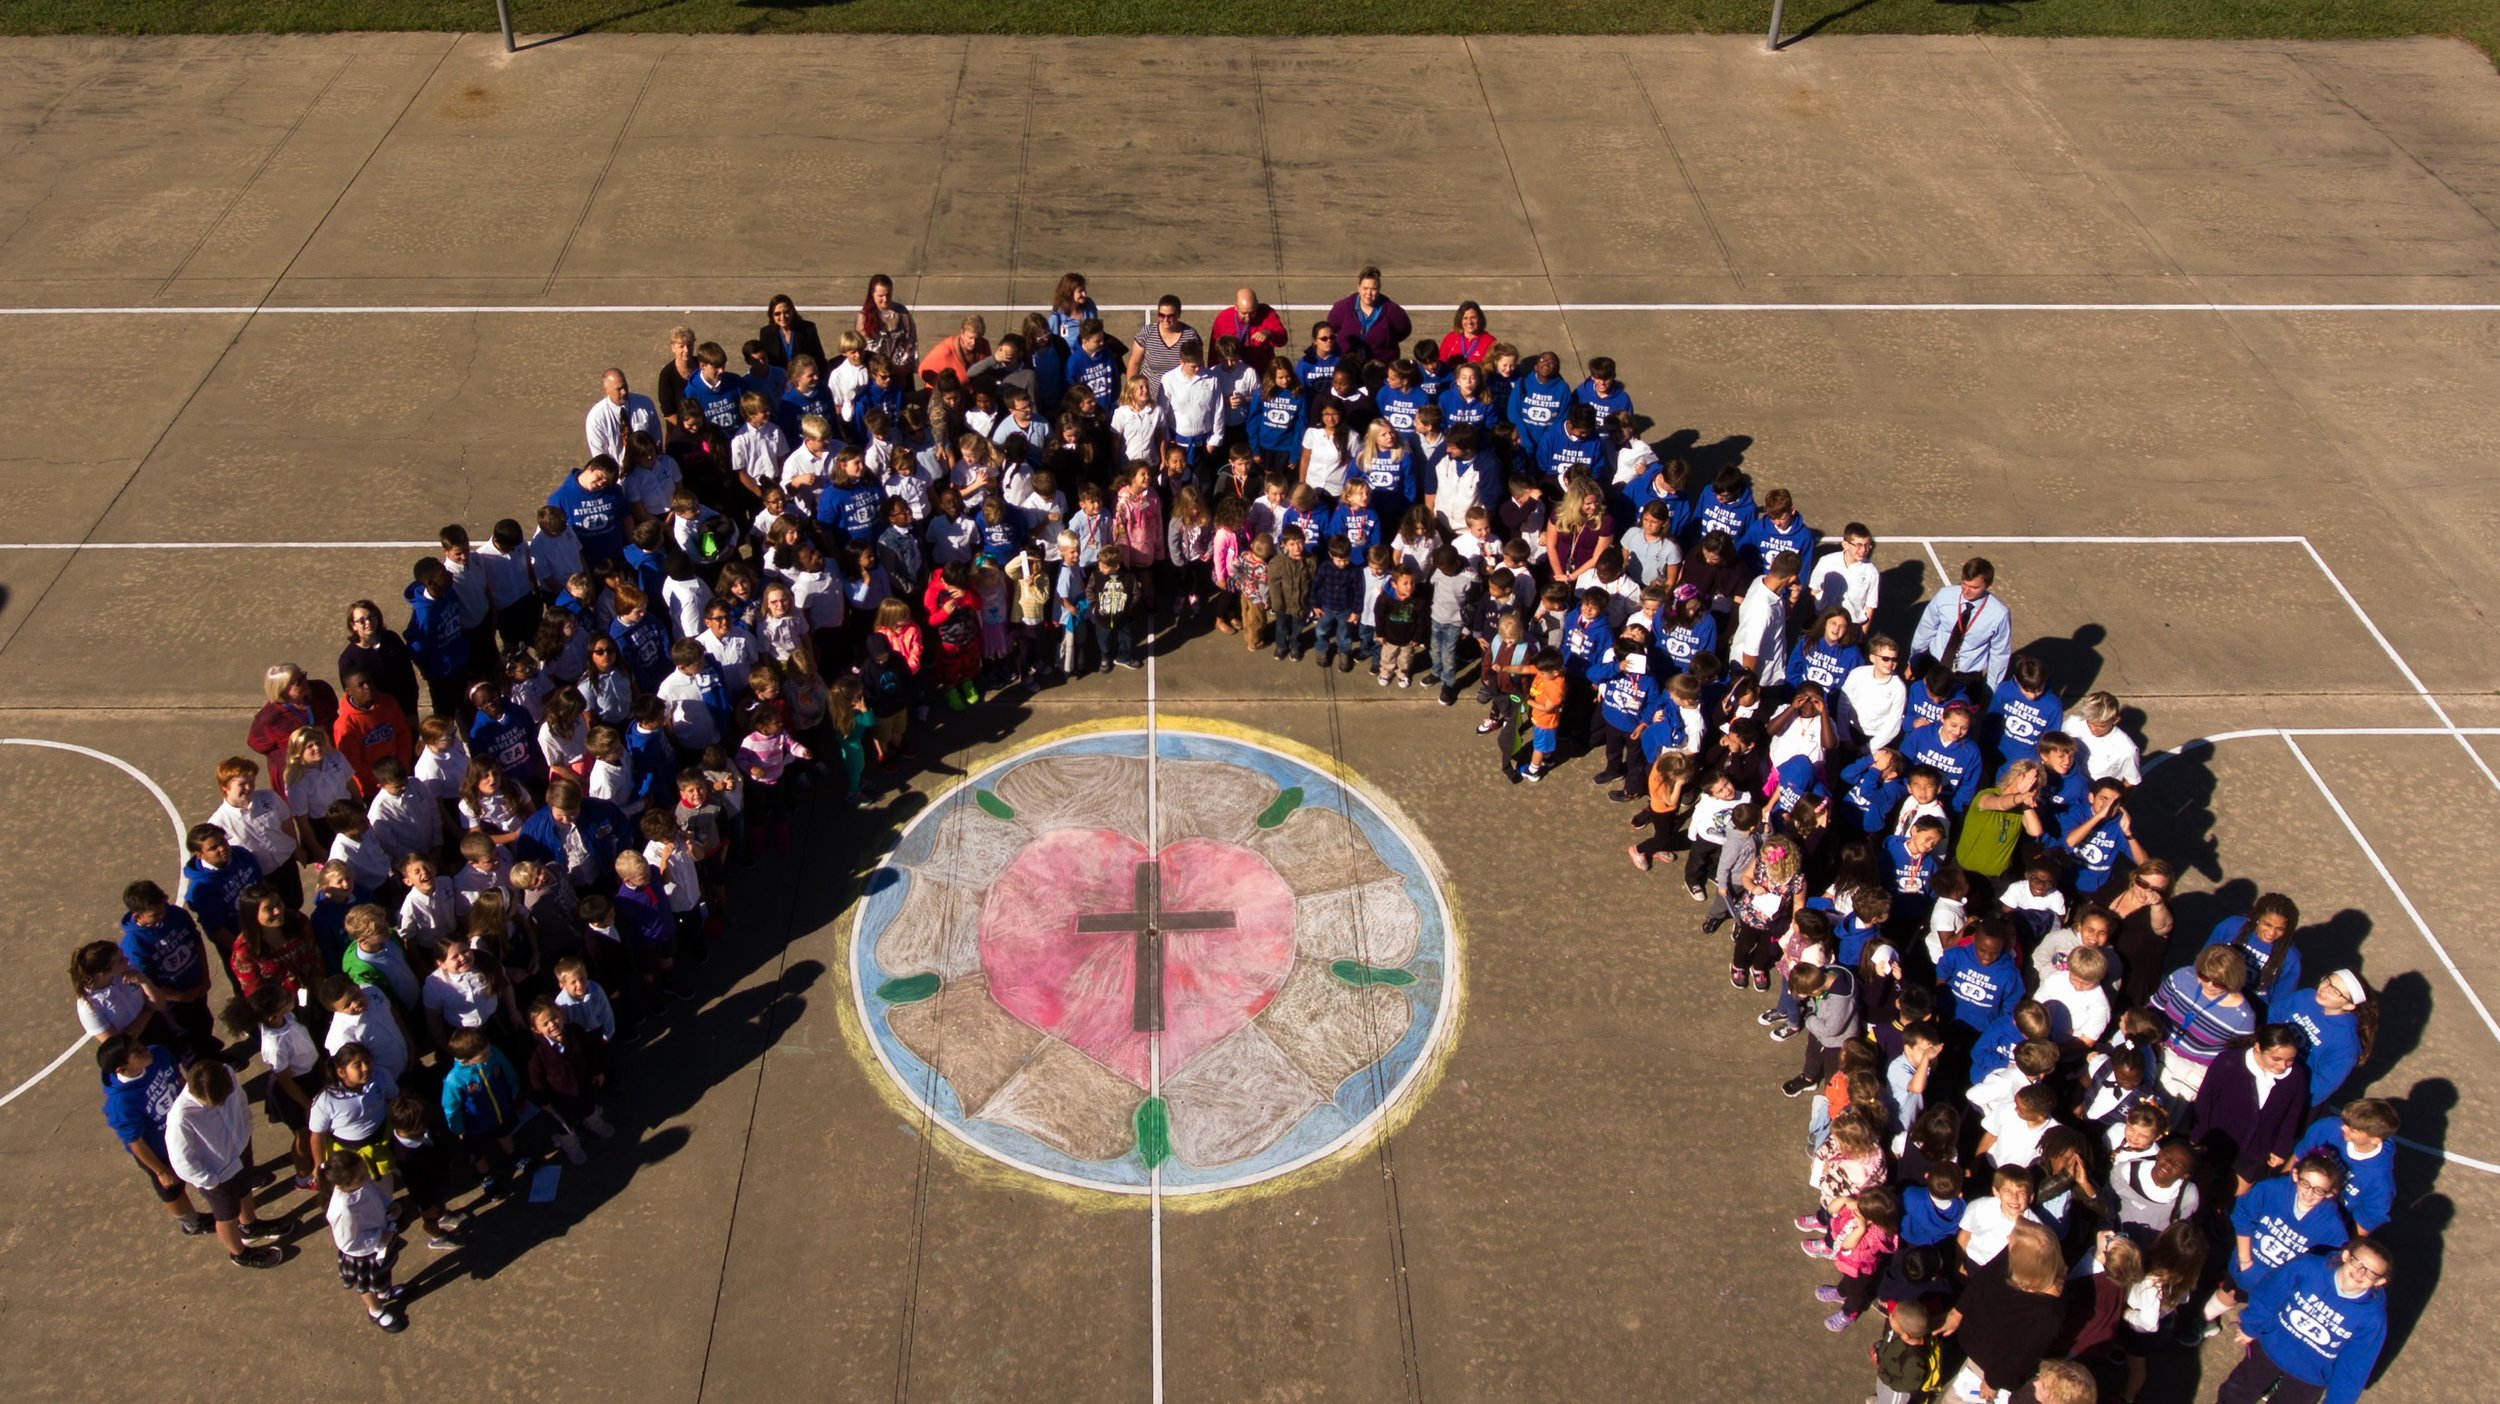 Students gather for an all-school picture after celebrating the 500th anniversary of the Reformation!